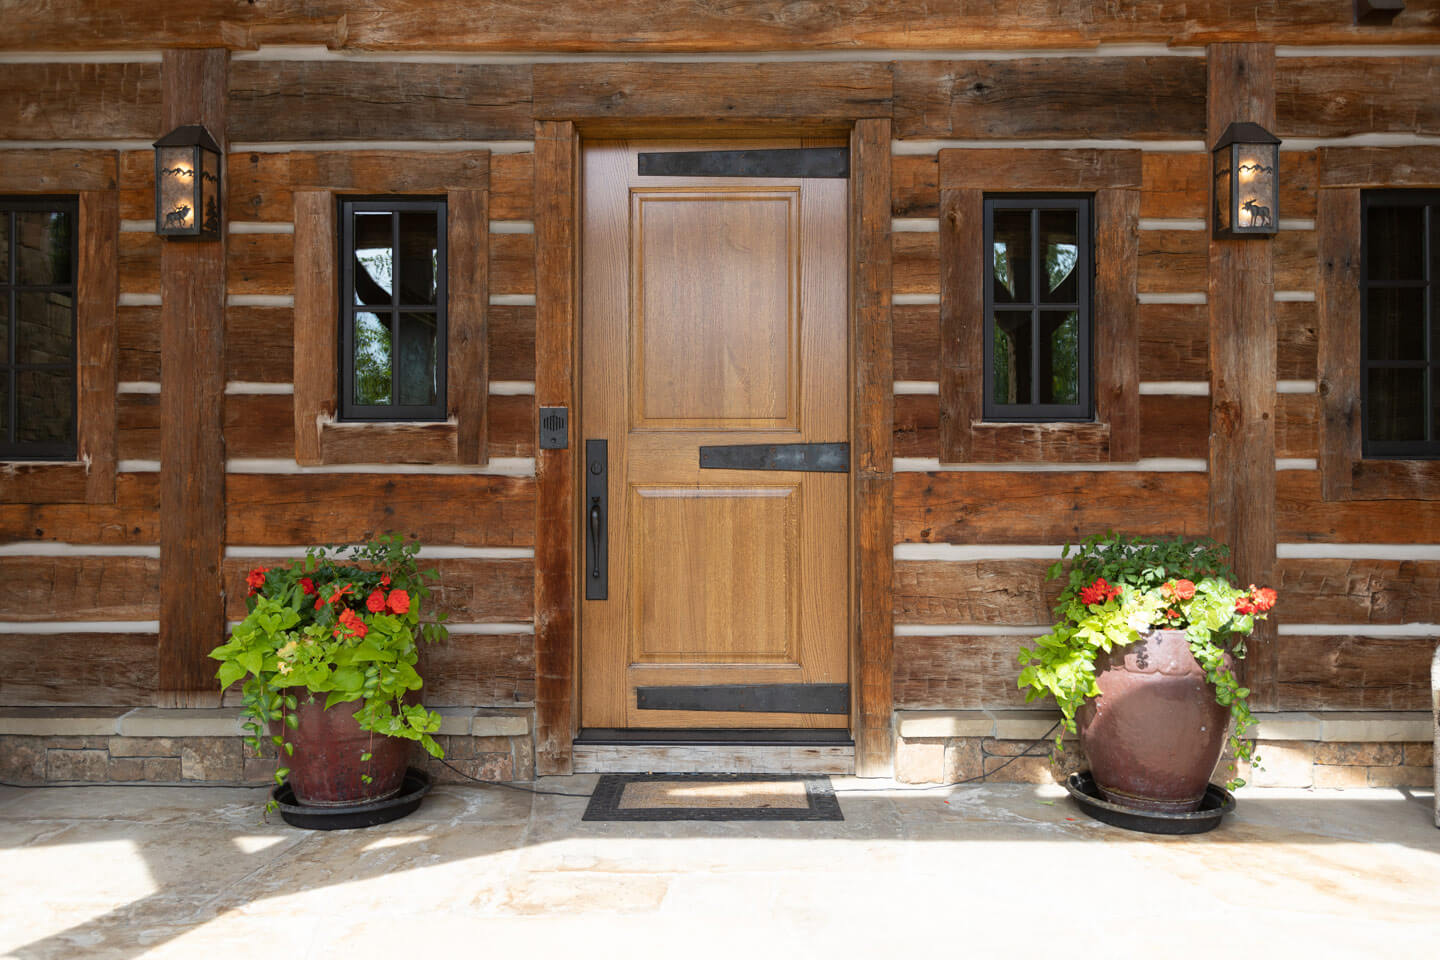 Residence entrance with alder wood door and wrought-iron hinges